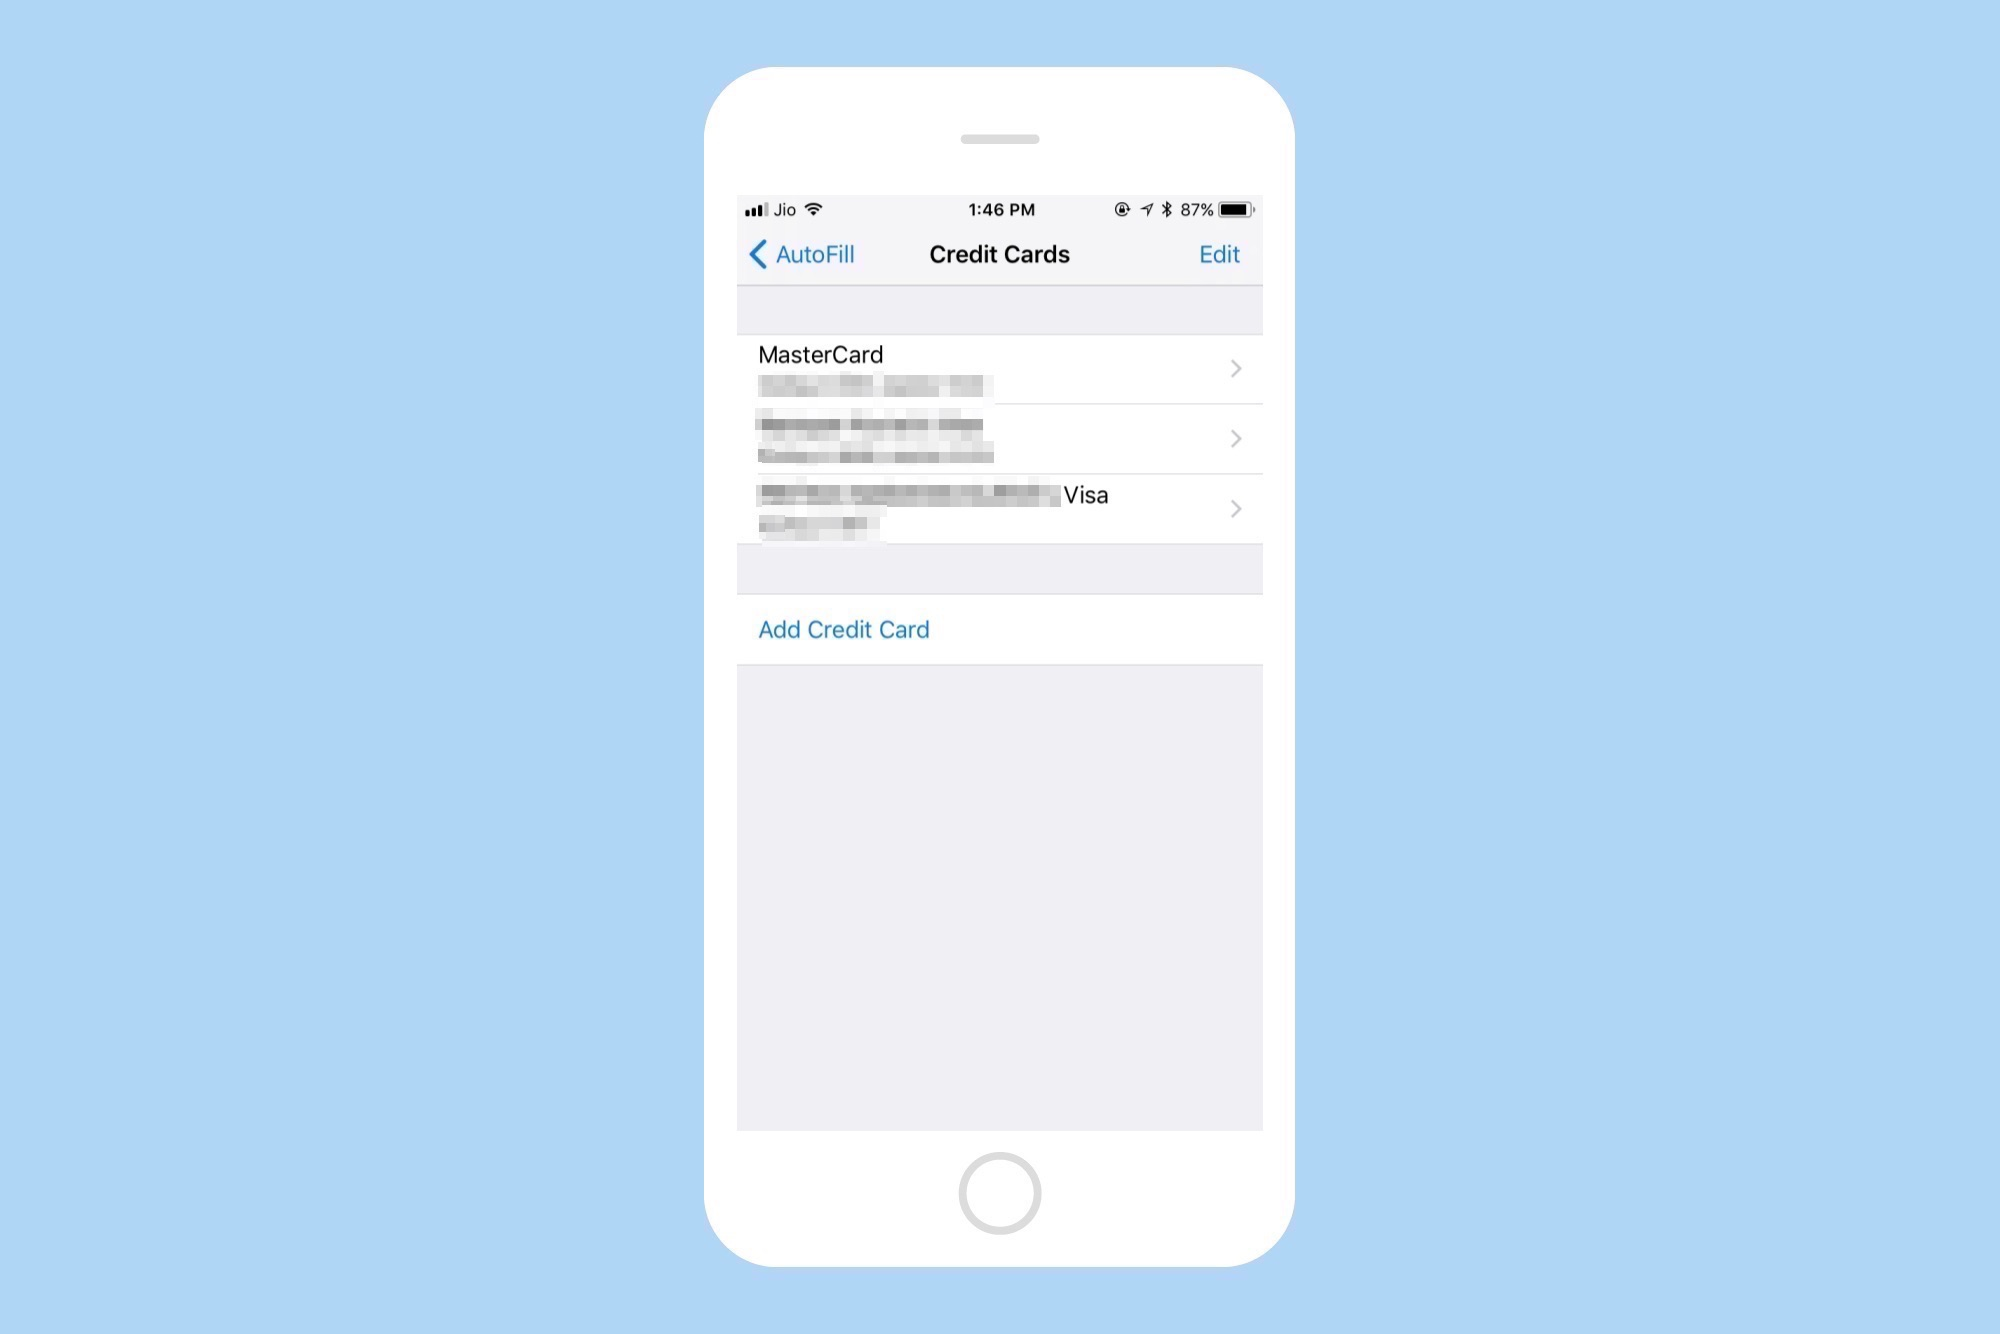 How to use iCloud Keychain to sync passwords across Apple